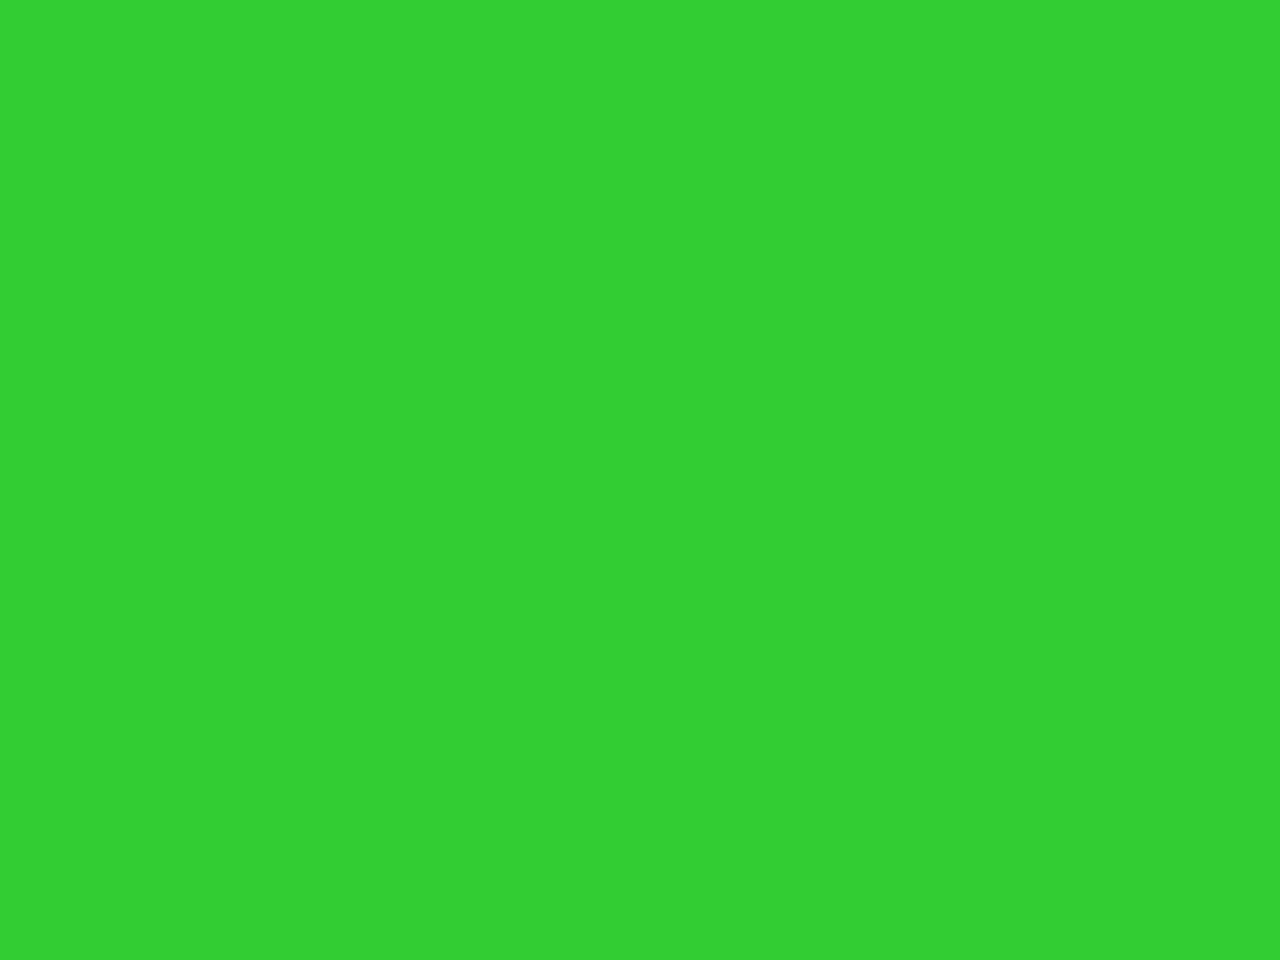 1280x960 Lime Green Solid Color Background